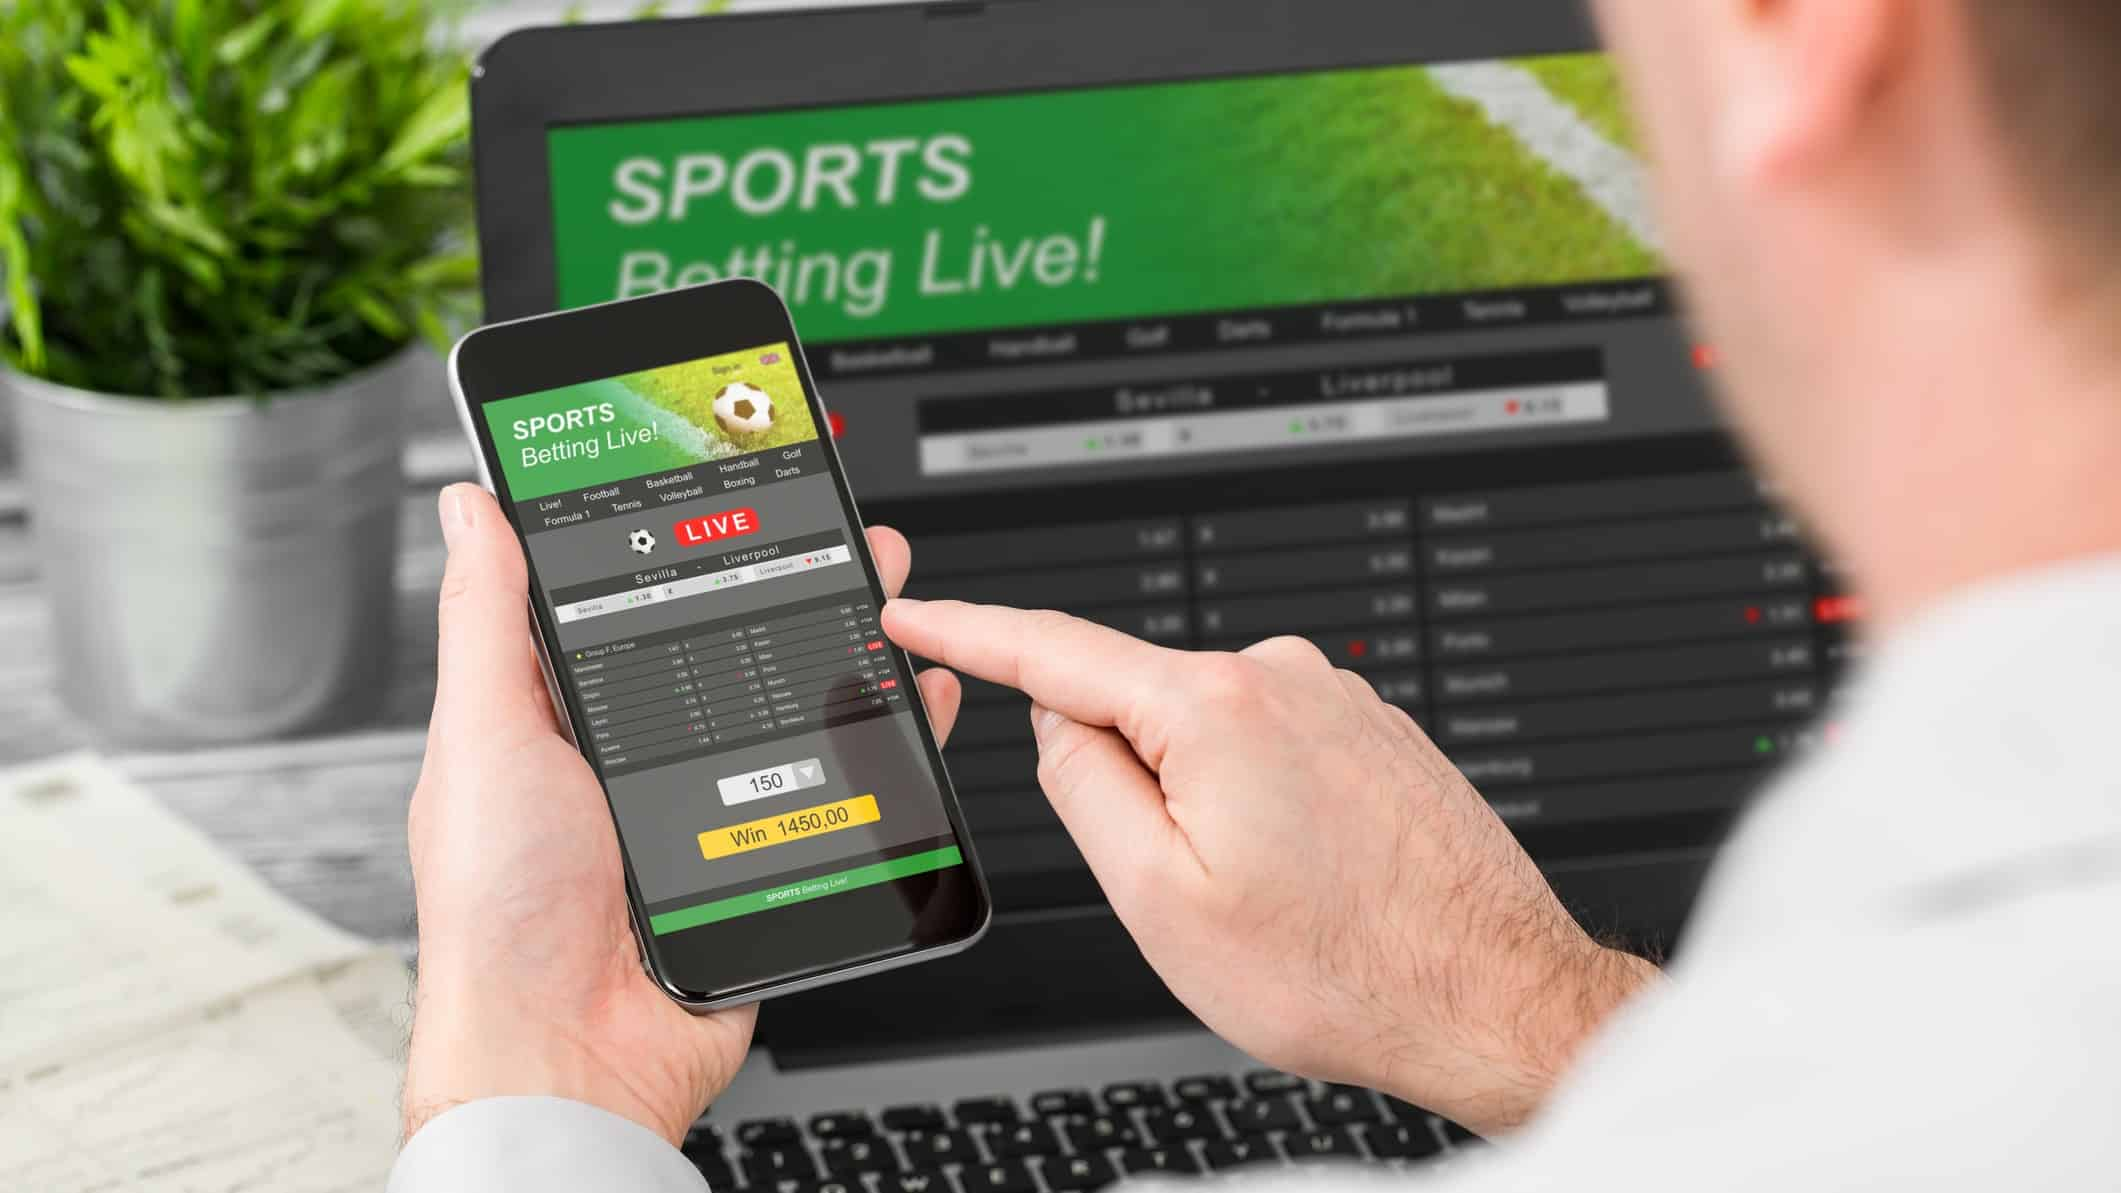 man placing sports bet on mobile phone and laptop, sports betting, pointsbet share price